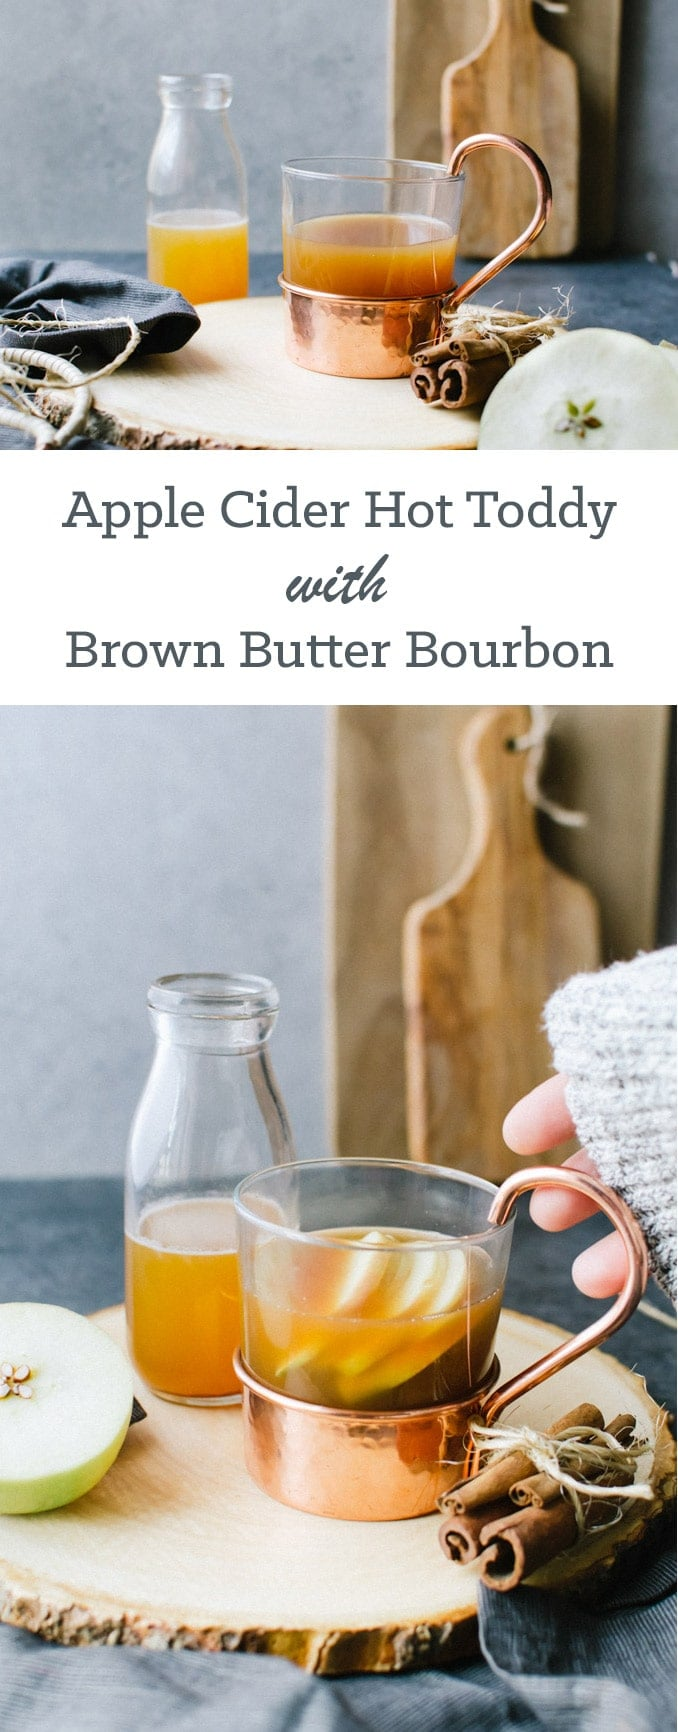 apple cider with brown butter bourbon recipe